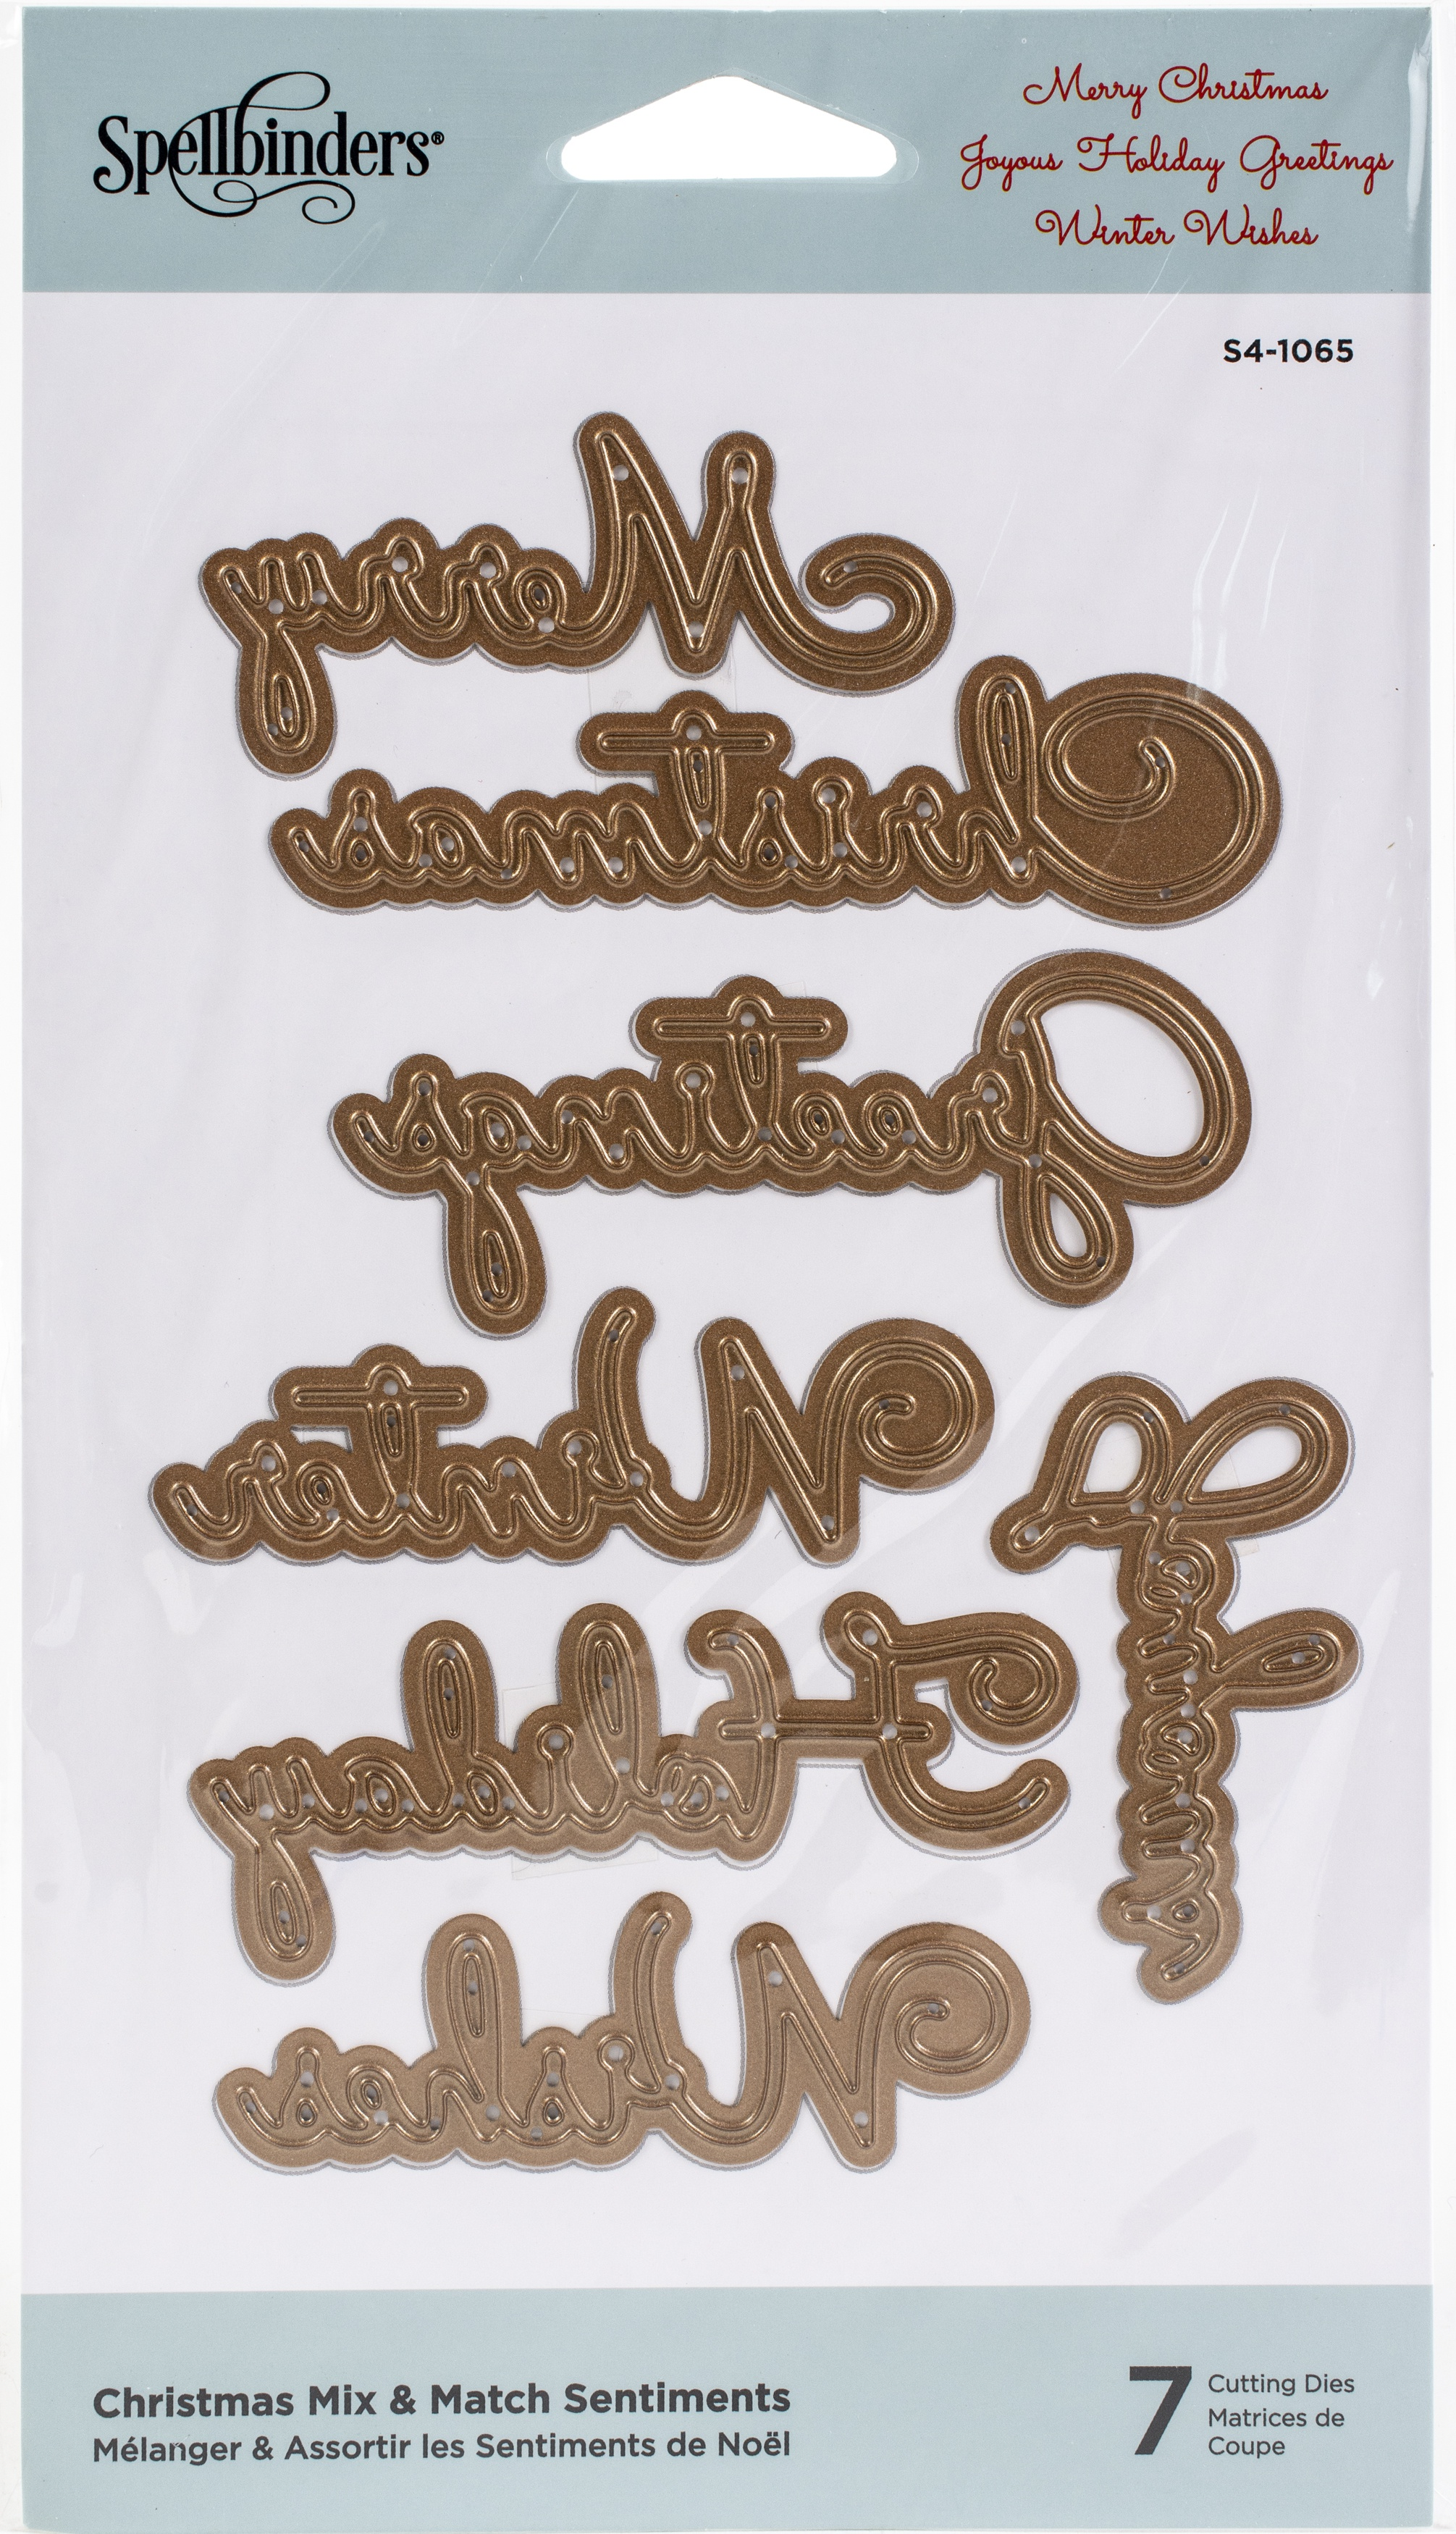 Spellbinders Etched Dies-Christmas Mix & Match Sentiments